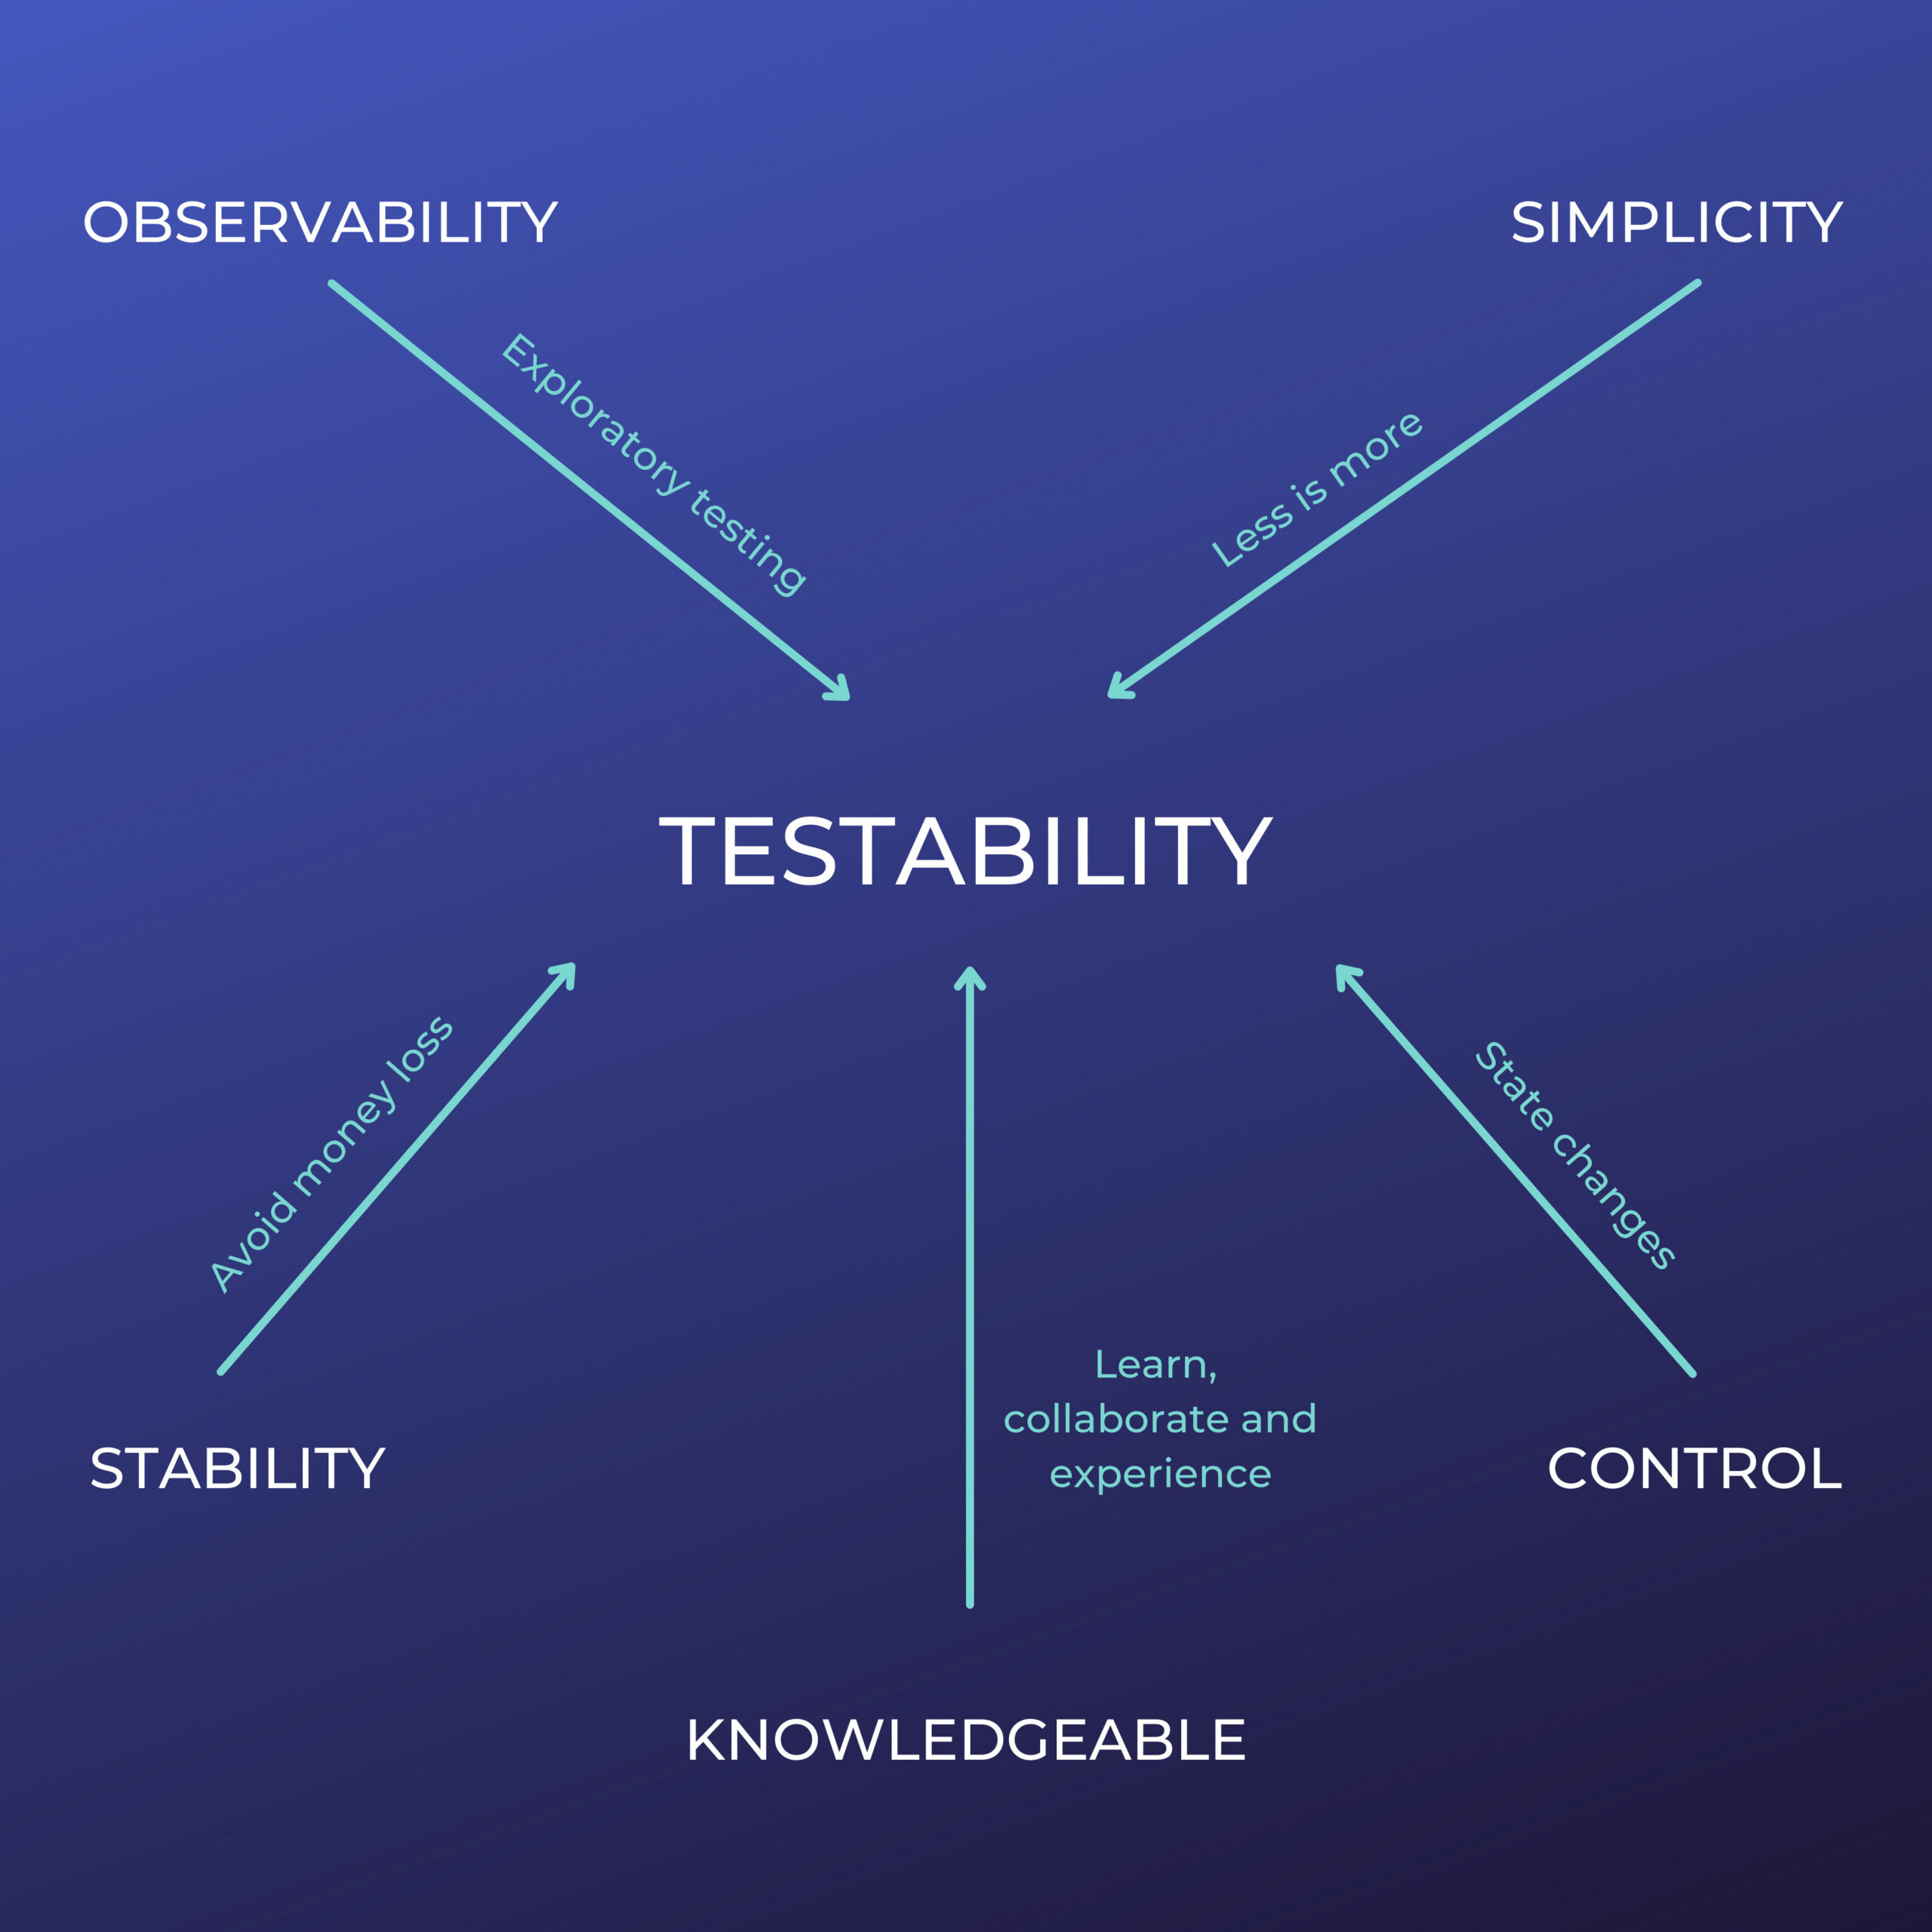 software testability characteristics from a quality mindset. Designed by Enrique A. Decoss